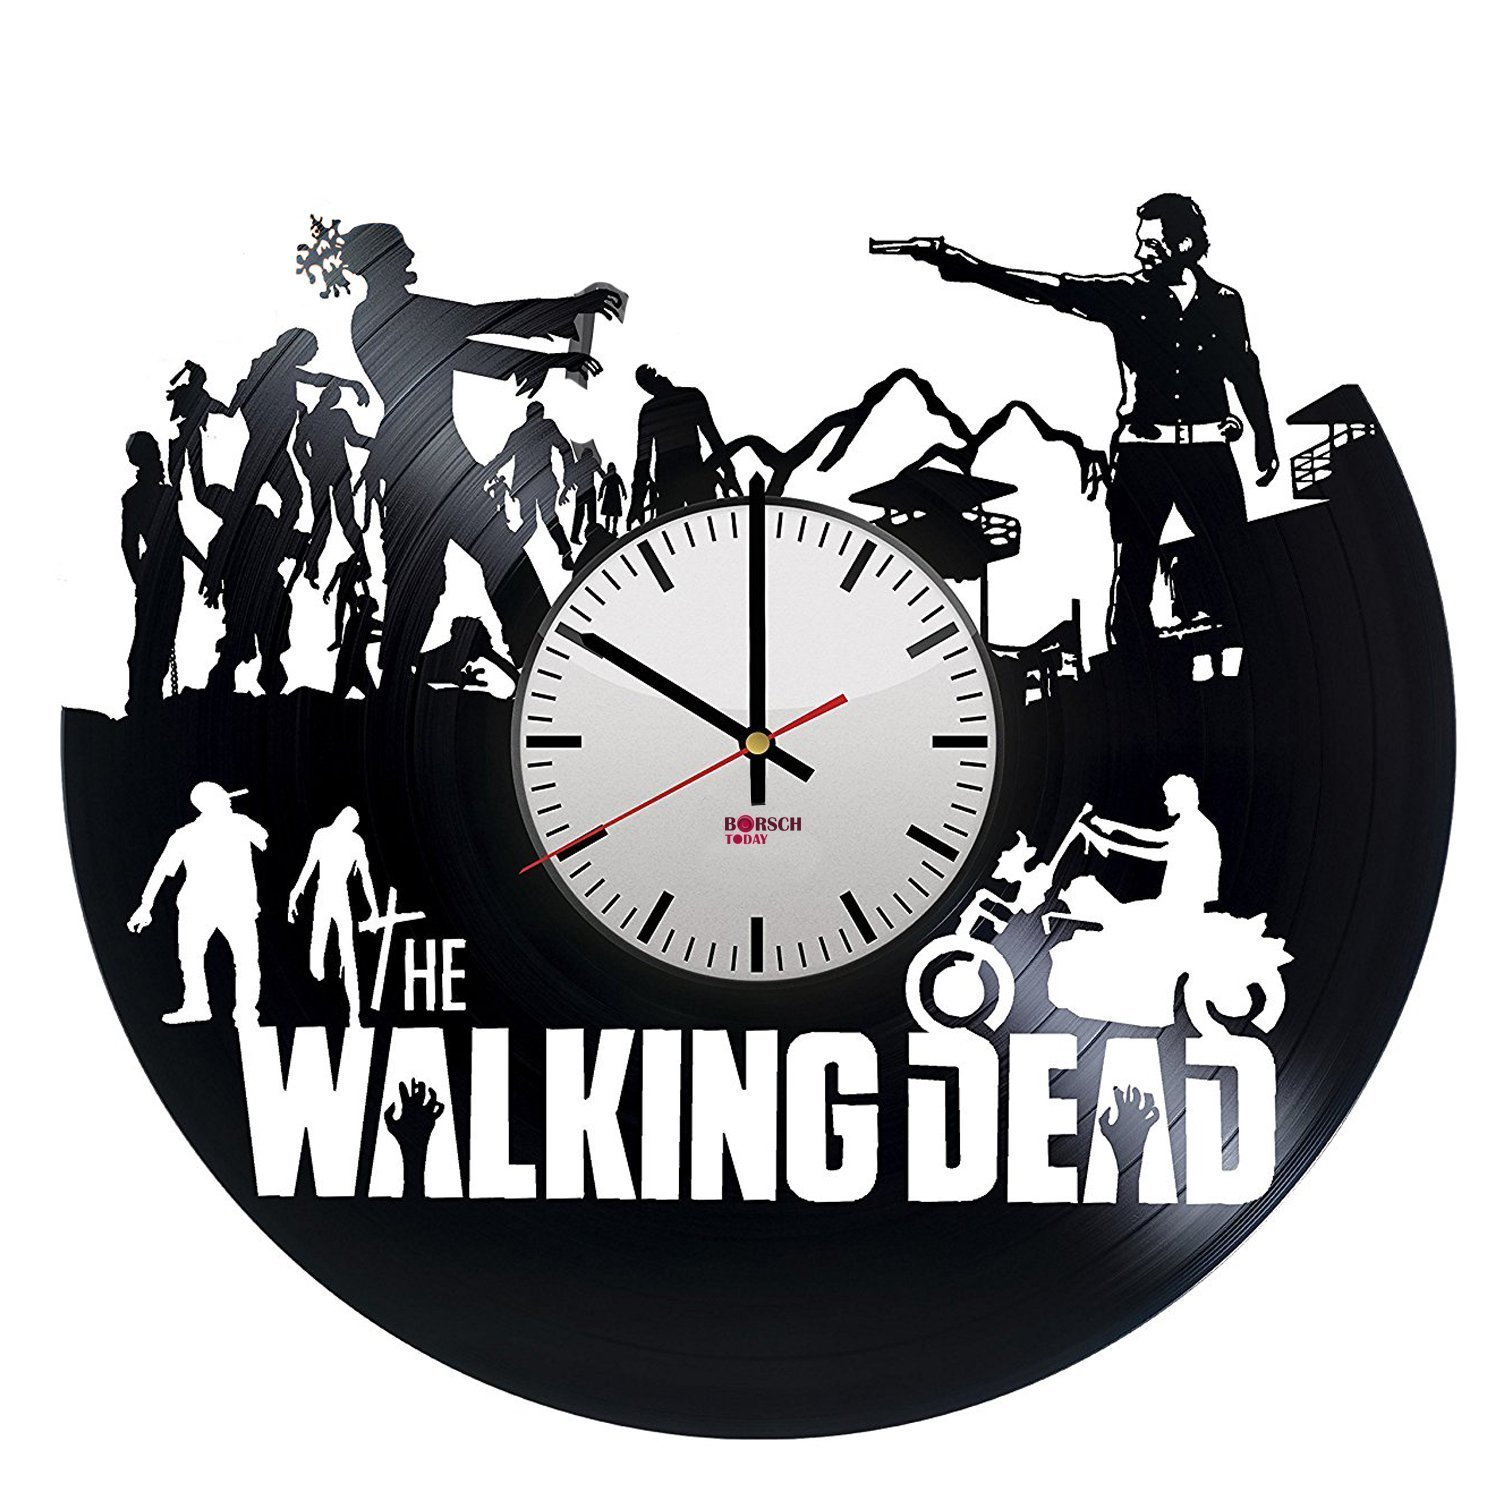 The Walking Dead Handmade Wall Clock Made From Used Vinyl Record - Get unique bedroom or kitchen wall decor - Gift ideas for boys and men – Horror Zombie Movie Unique Art Design